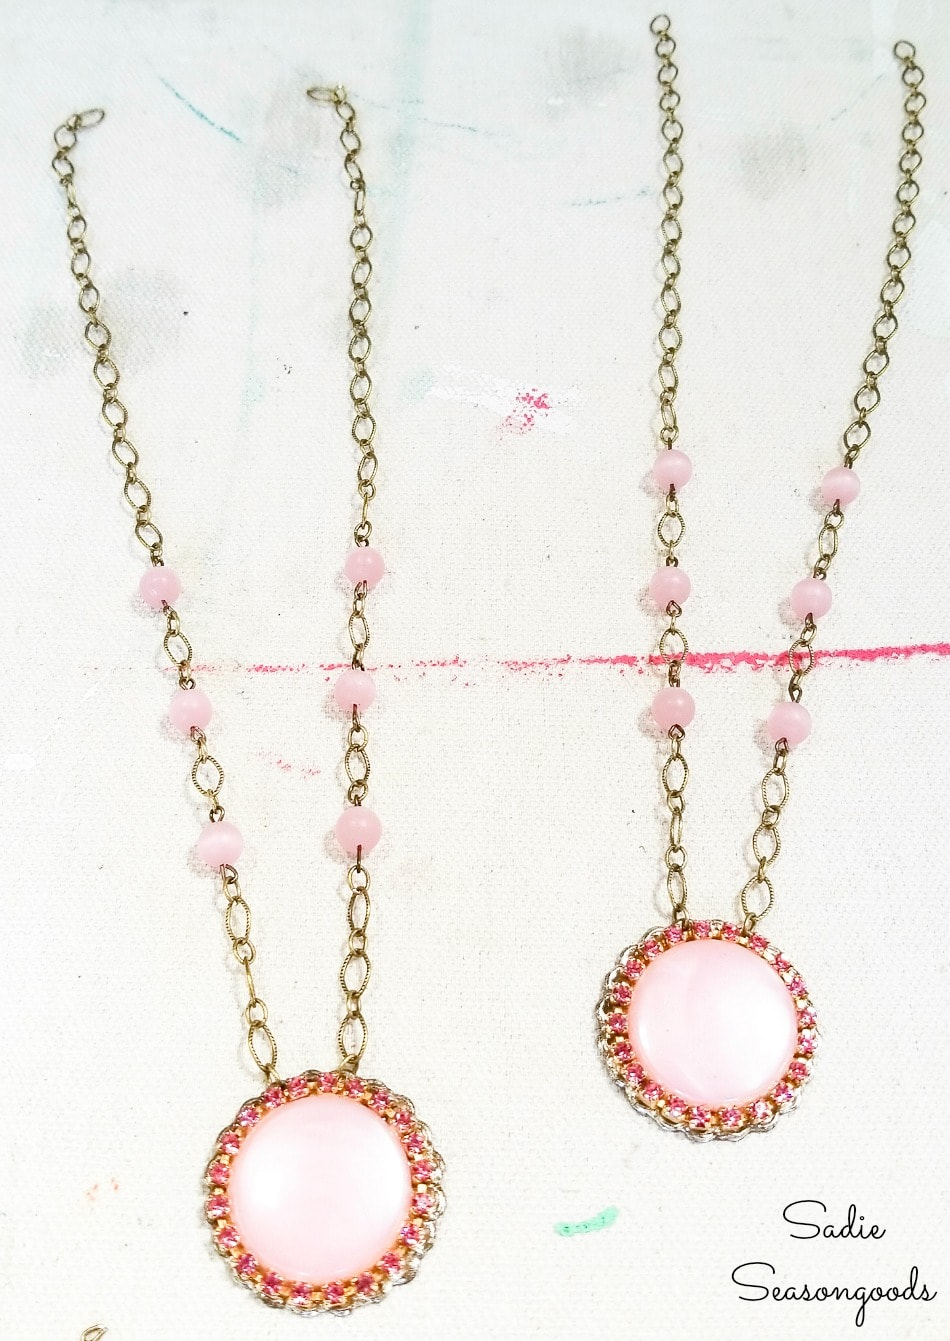 Best friend necklaces for adults